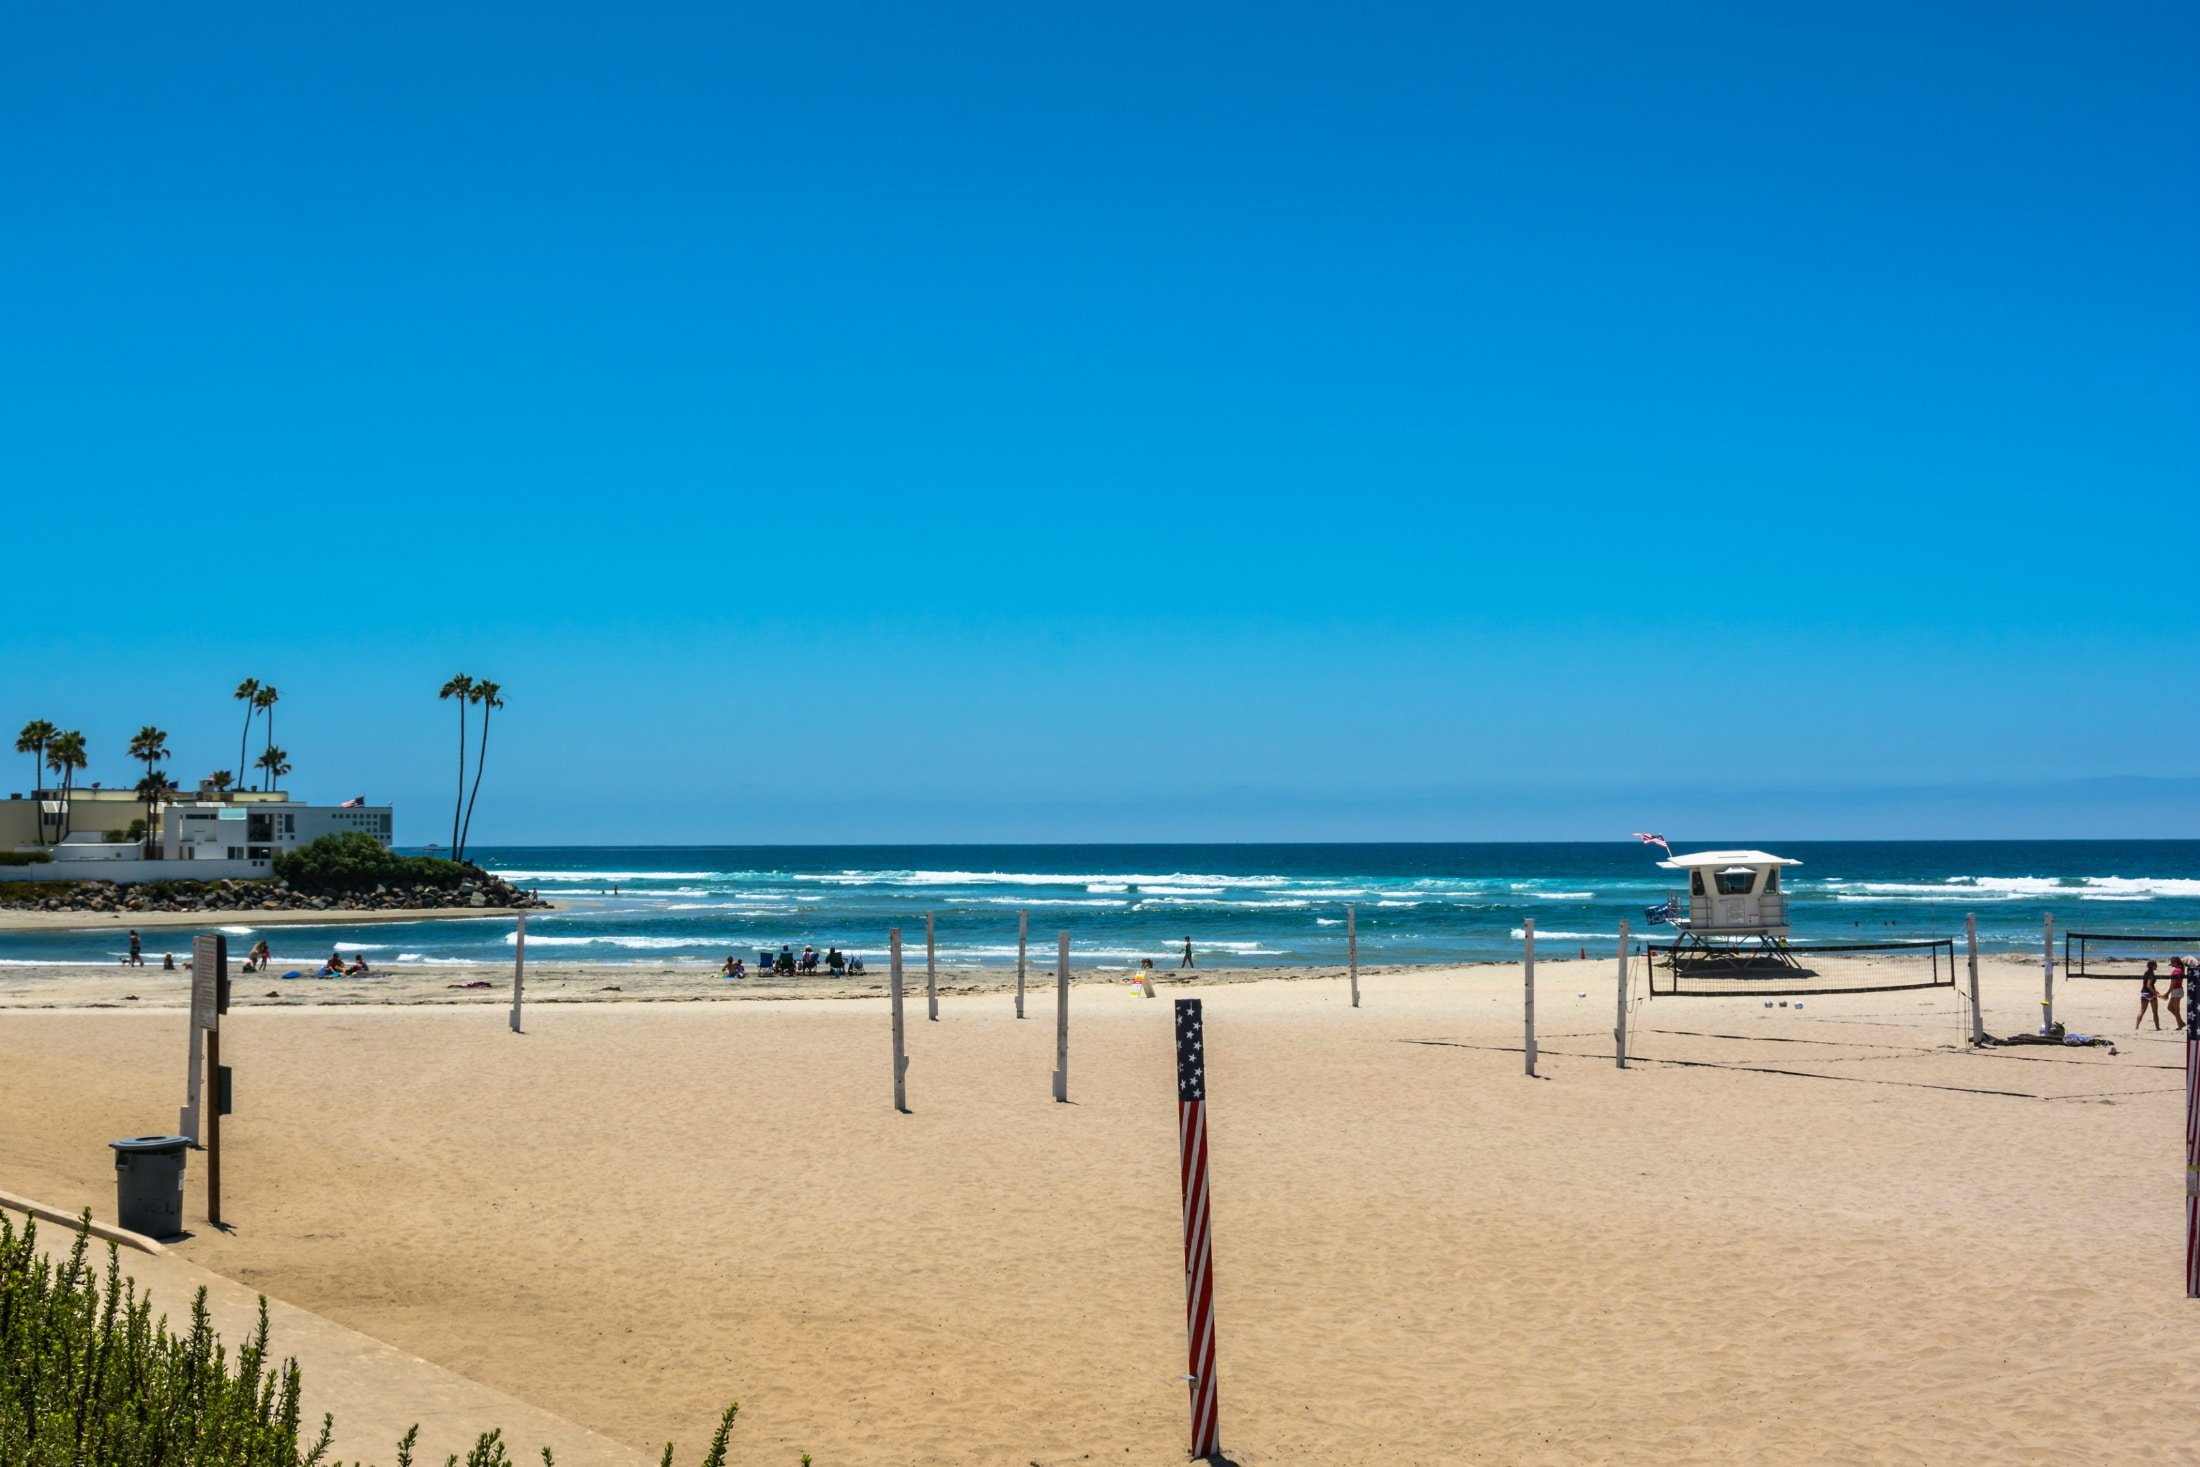 San Diego beaches: Del Mar beach